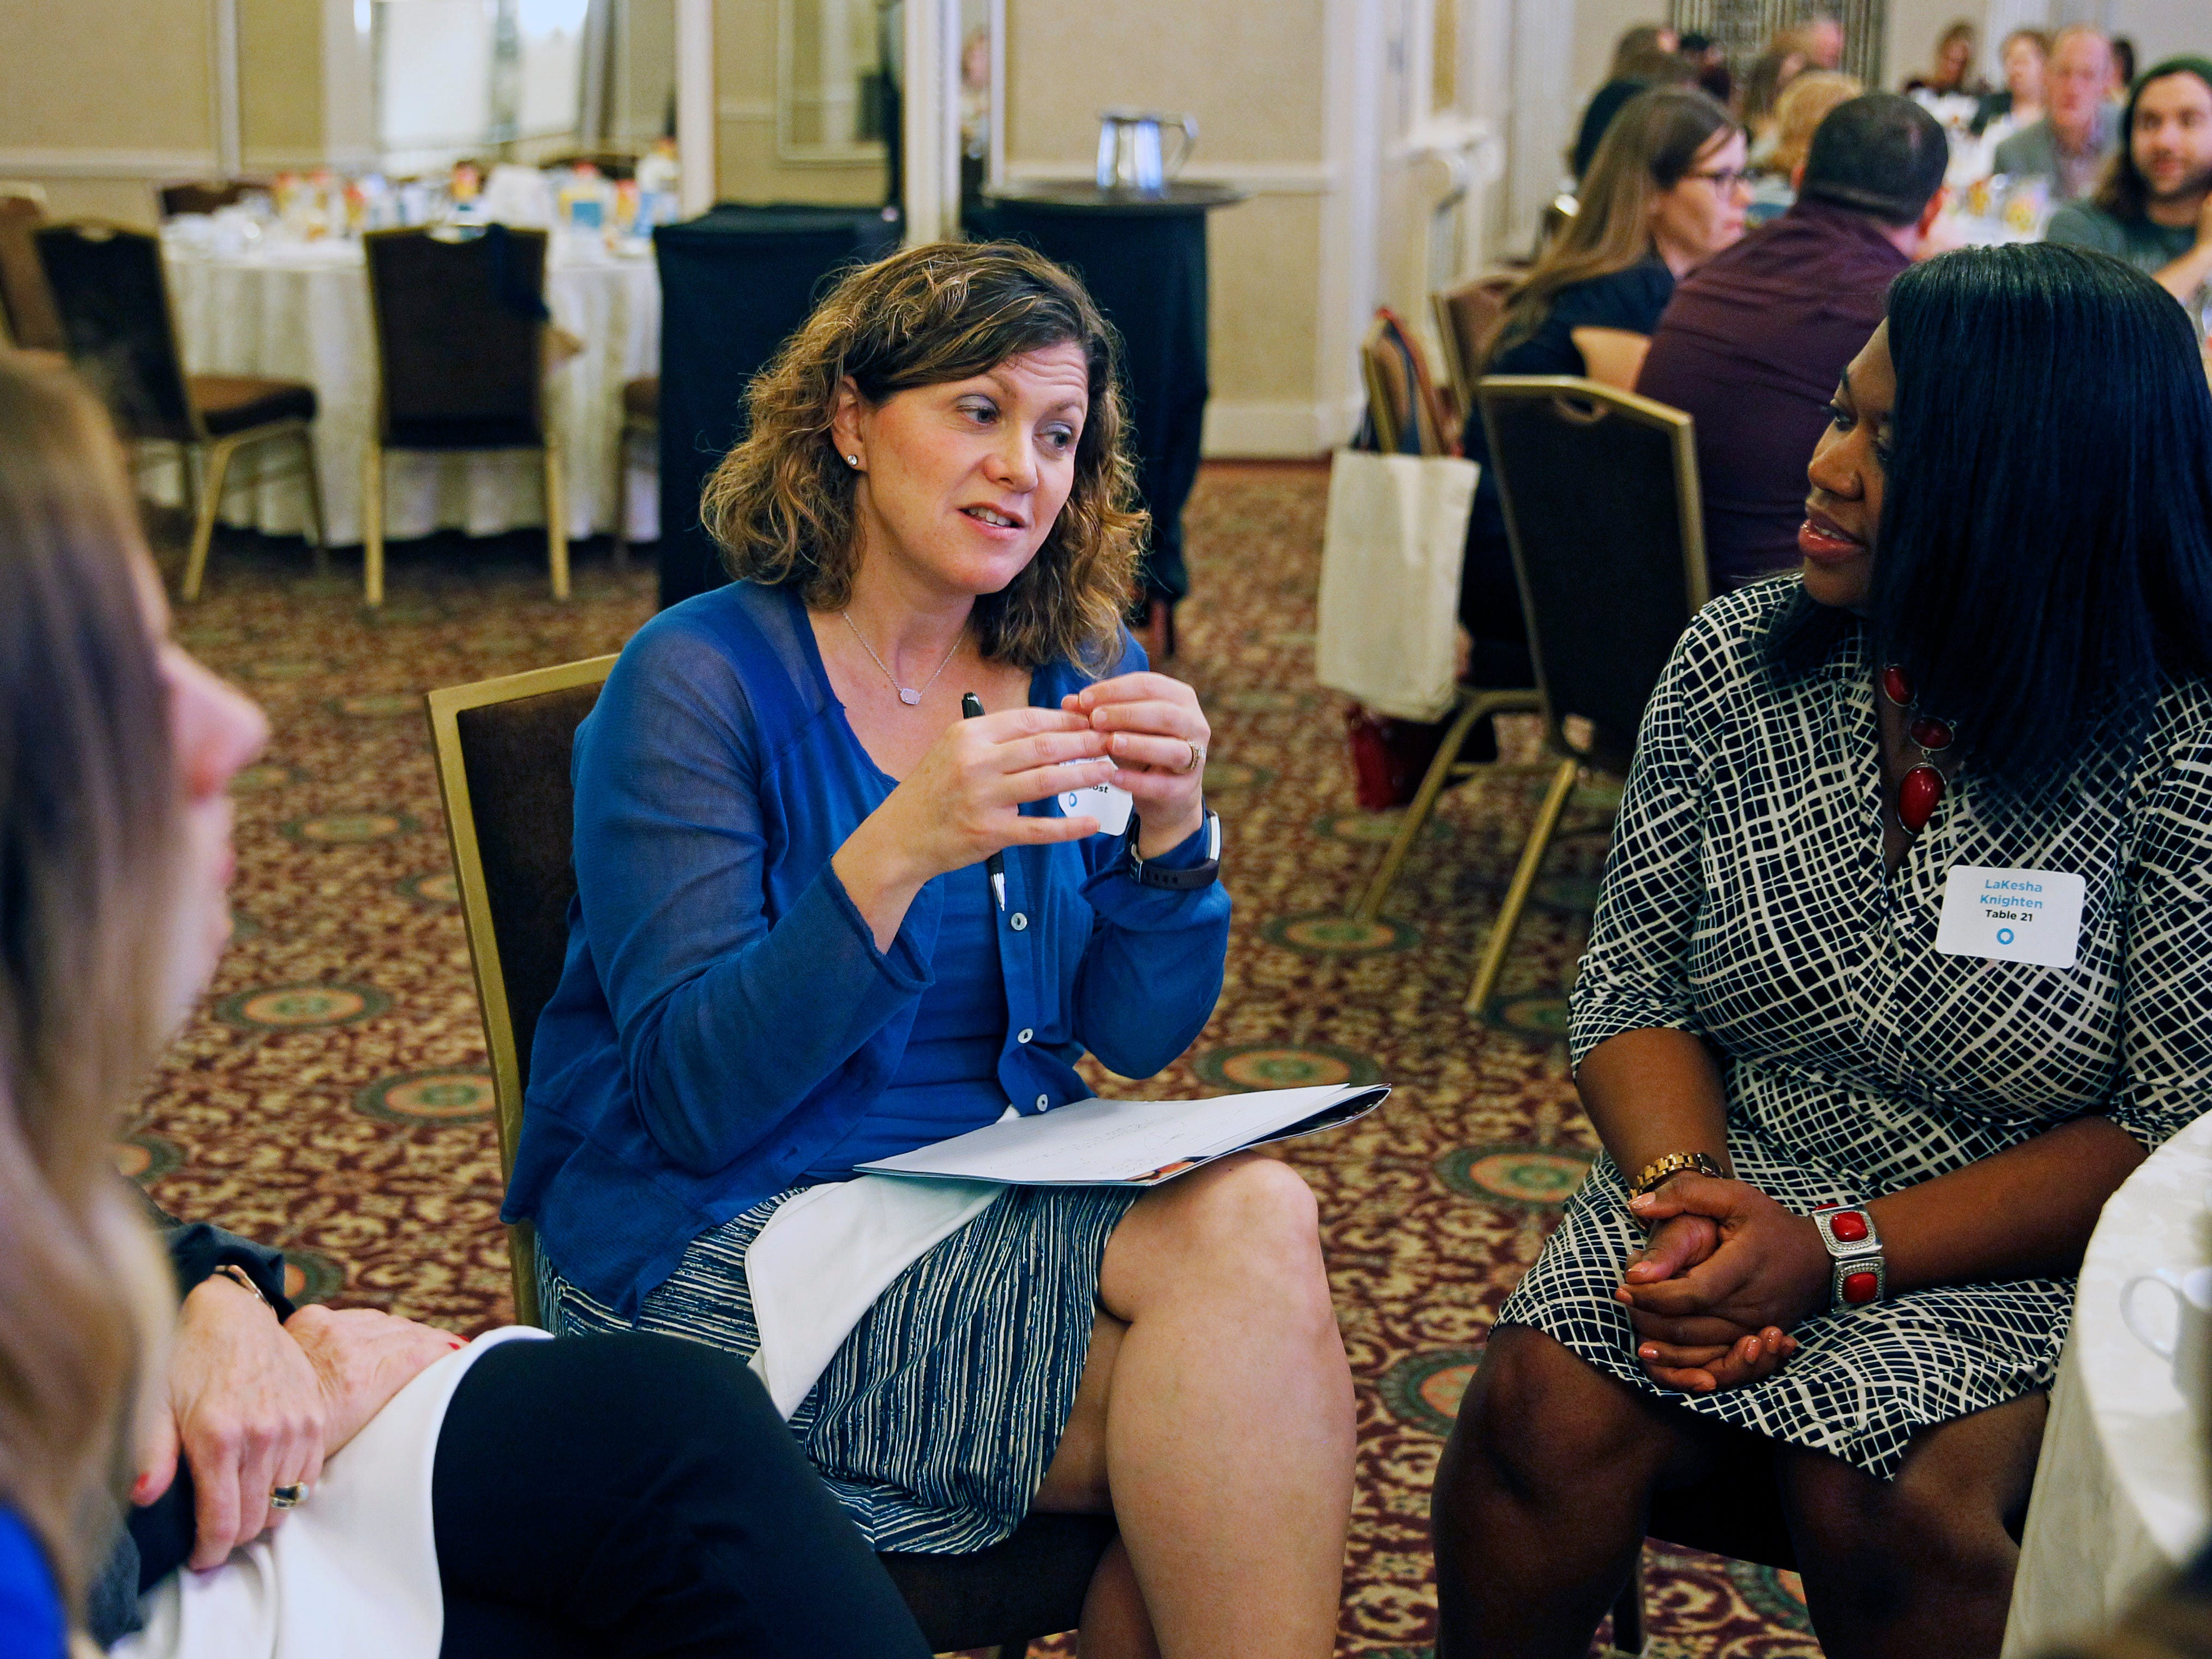 """Ellen Friebert Schupper (center) a  discussion on the topic of """"The power of one to one to create community change"""" at On the Table, a regional event sponsored by the Greater Milwaukee Foundation on Tuesday.  LaKesha Knighten (right) listens during the event at  the Hilton City Center, 509 W. Wisconsin Ave., that was aimed at getting people to brainstorm about issues confronting their communities and ways to resolve problems."""